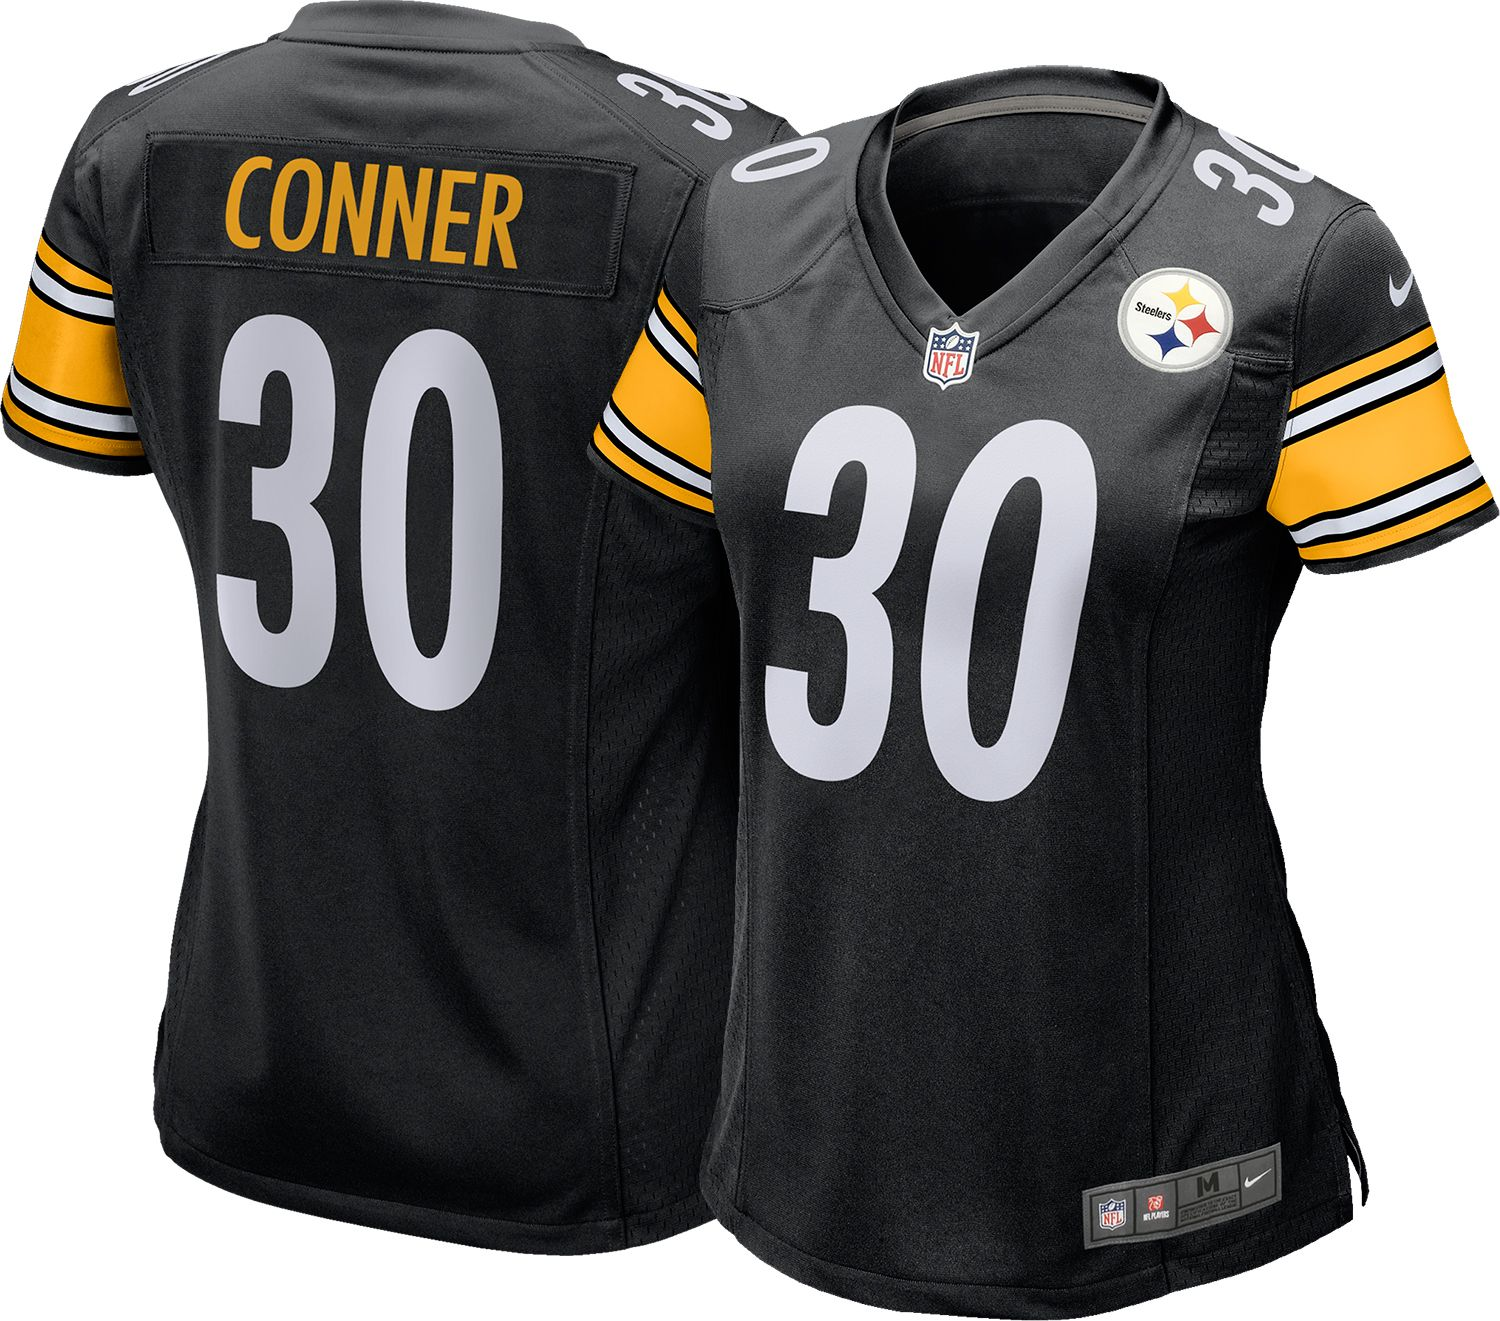 james conner jersey shirt